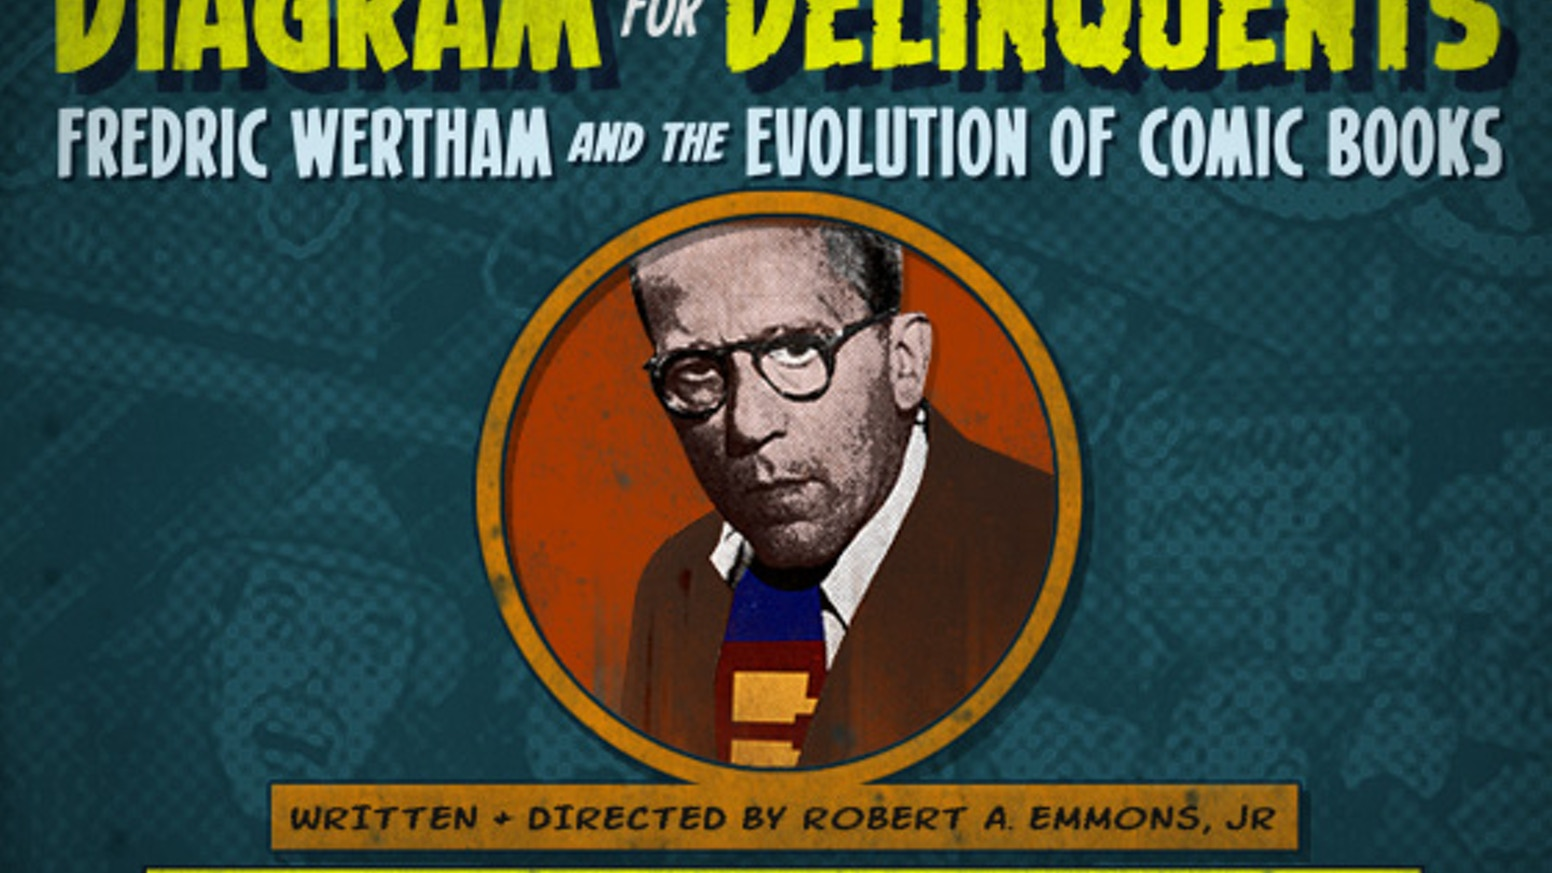 A documentary film about Fredric Wertham's crusade against comics, which helped spur burnings of comics and Congressional hearings.